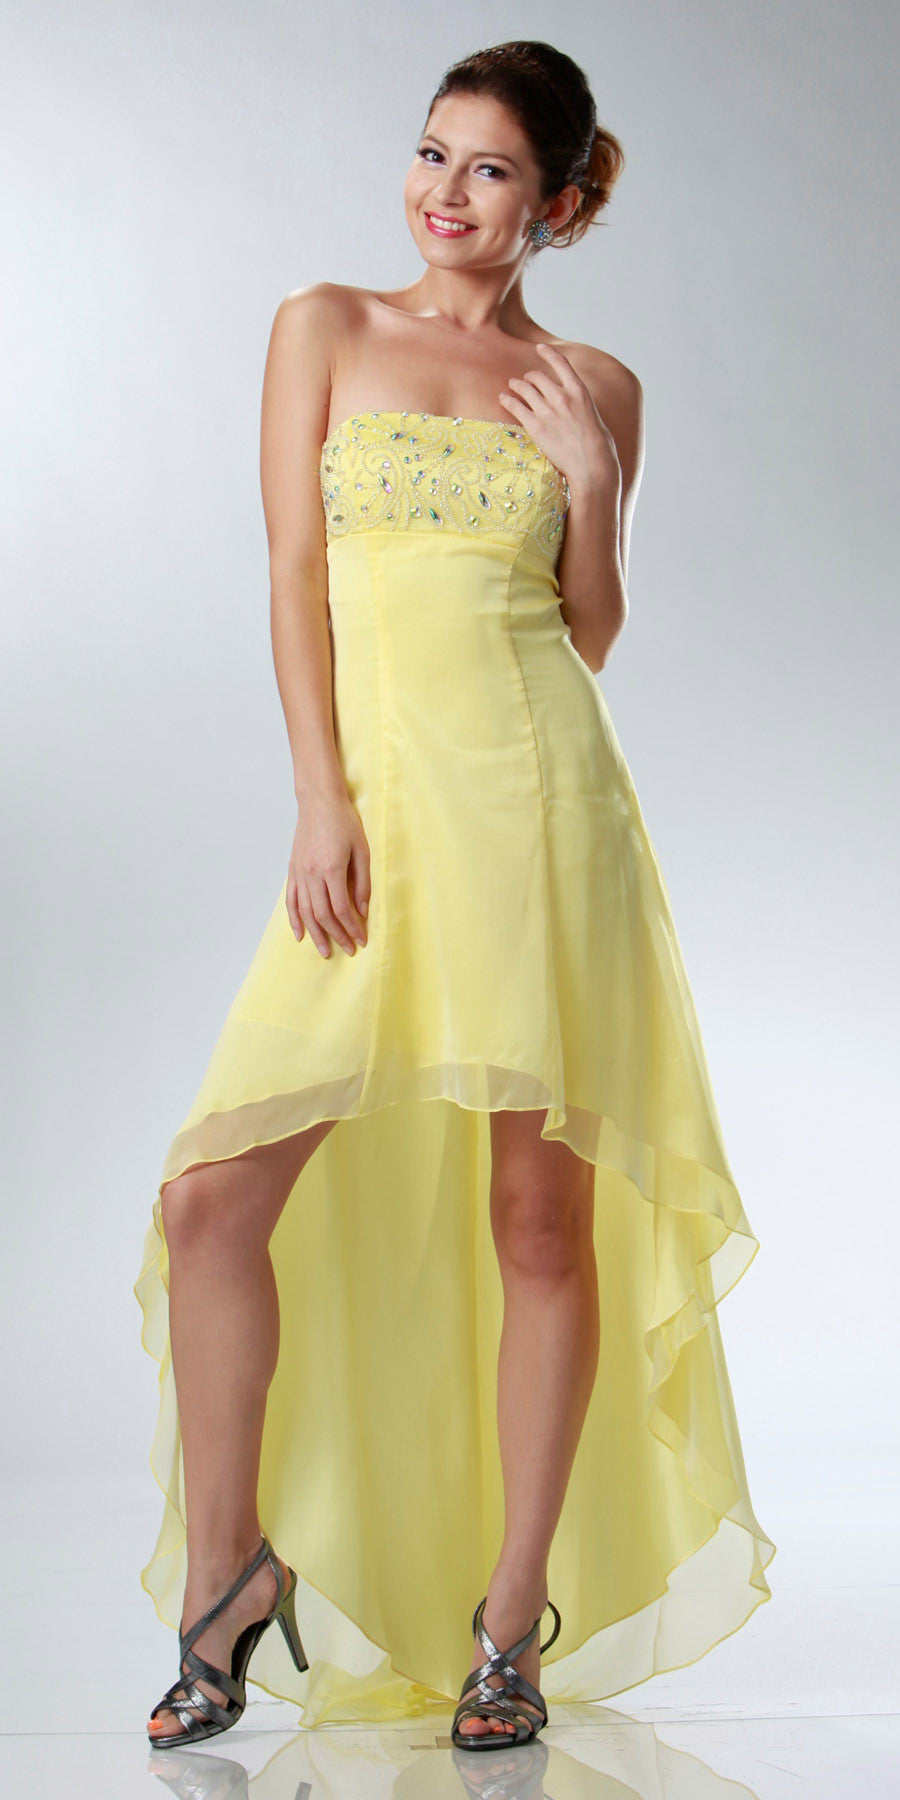 ON SPECIAL LIMITED STOCK - Yellow High Low Homecoming Dress 2 Tone Chiffon Strapless Beaded Top